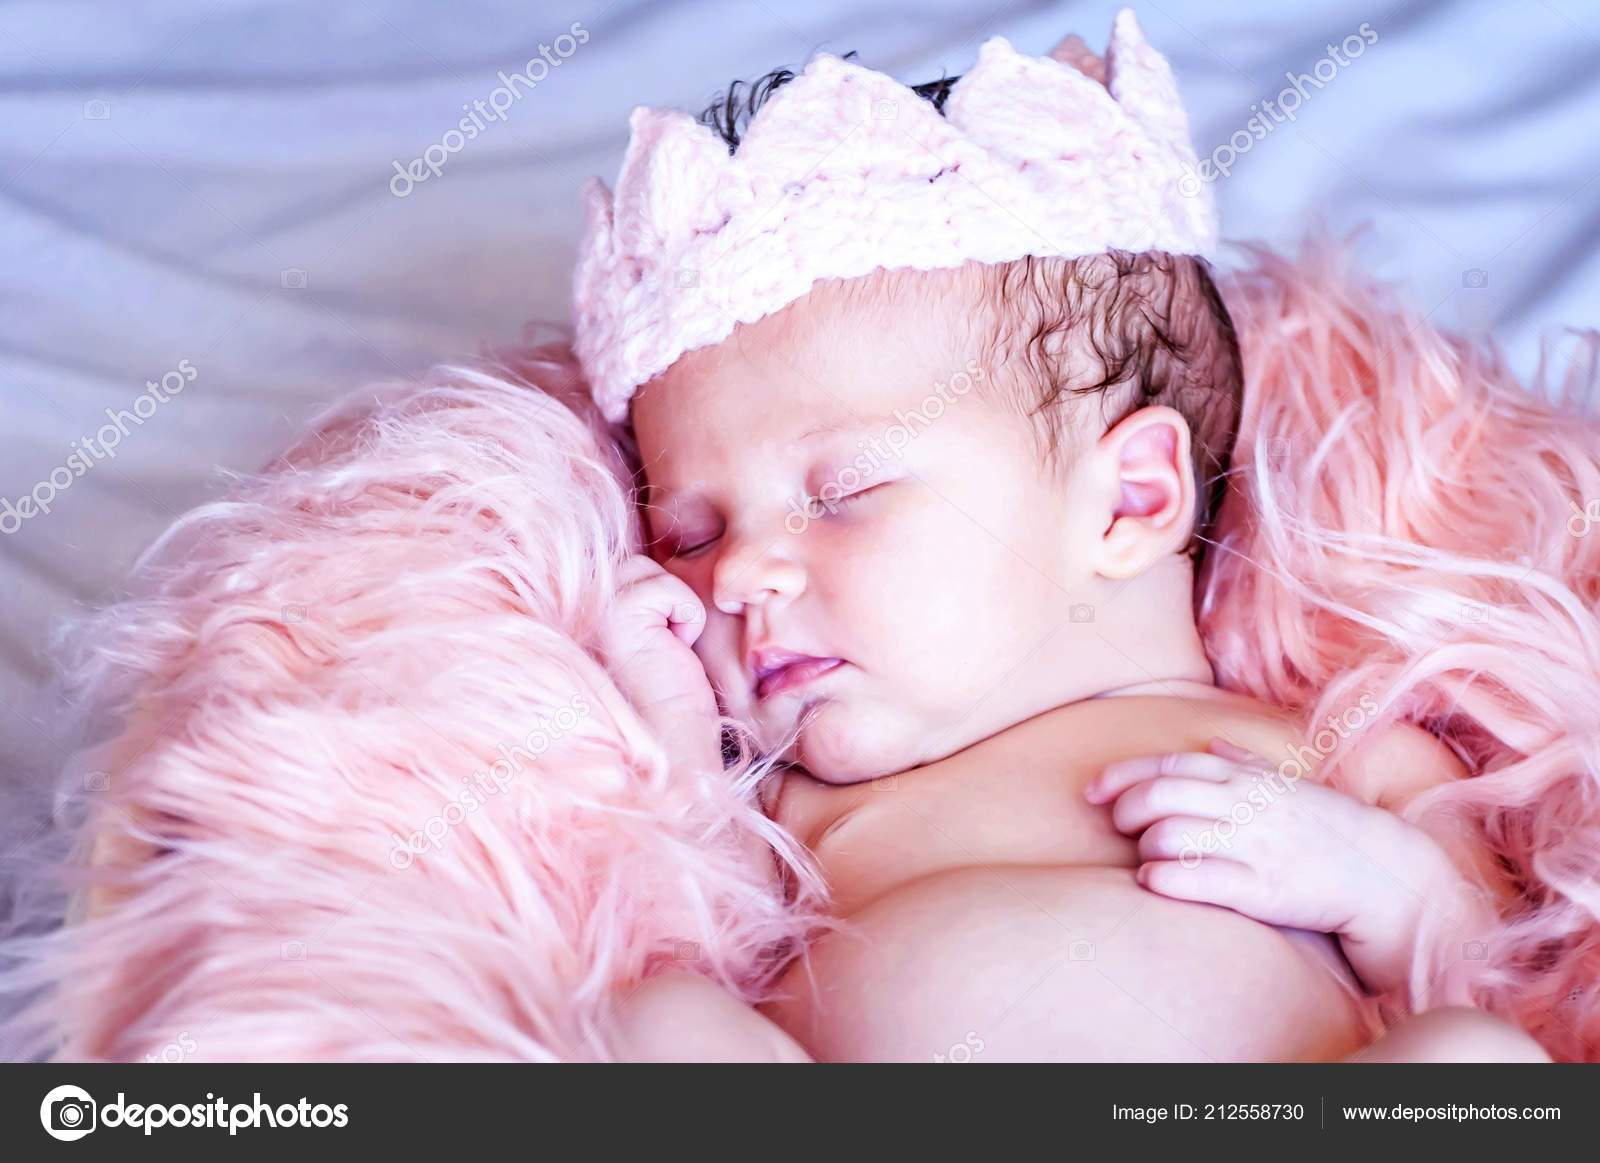 Cute caucasian newborn baby girl in a textile crown sweet little princess concept image newborn studio photo session idea photo by roman yanushevsky